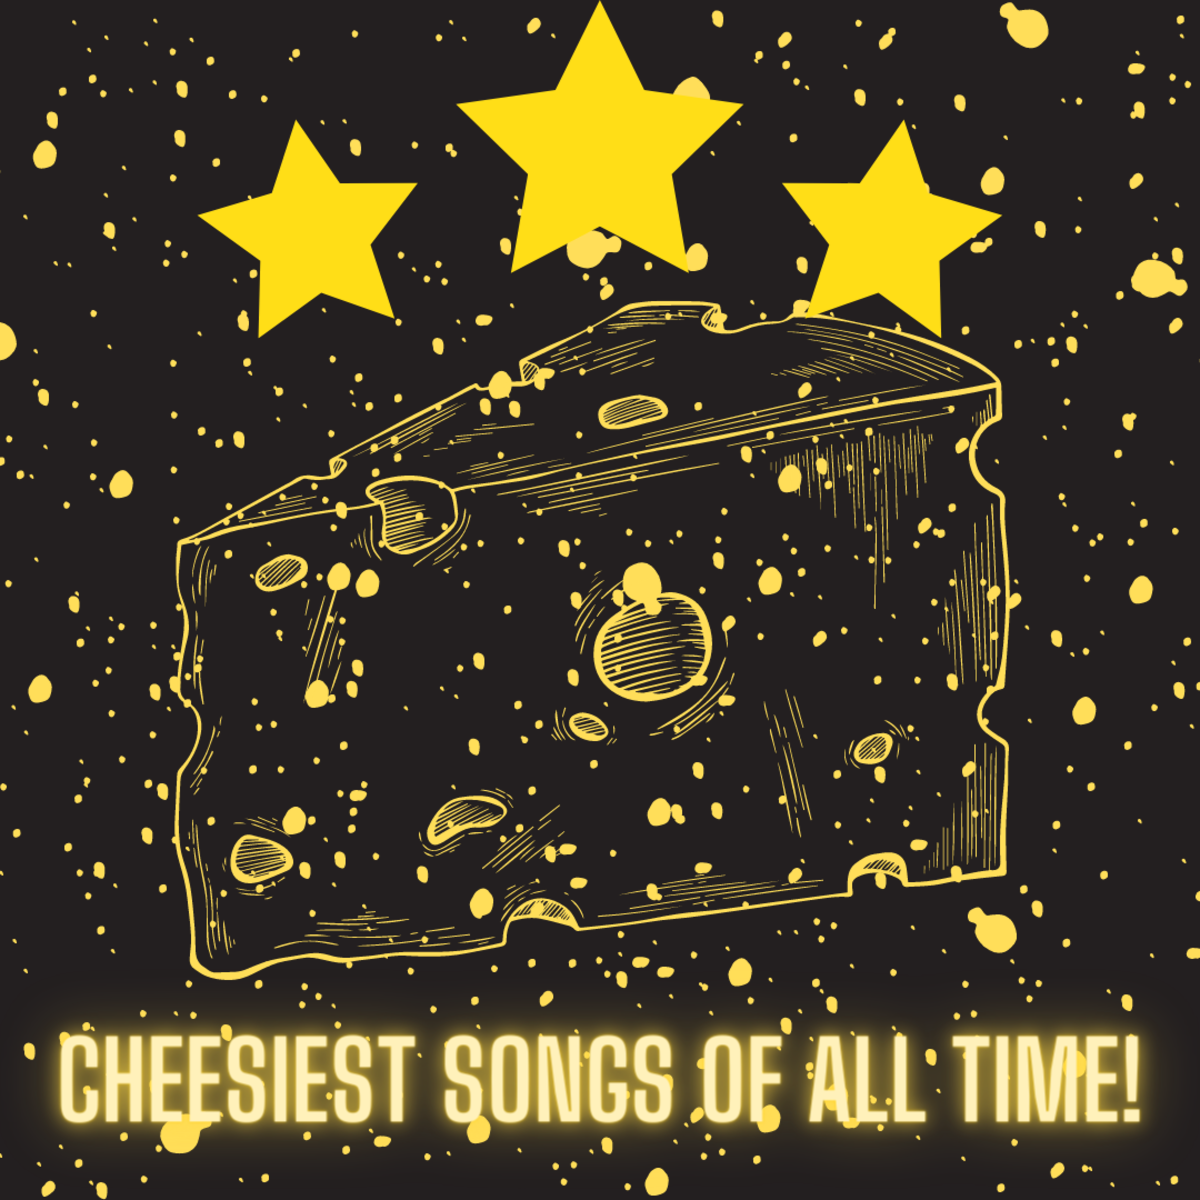 The 30 Cheesiest Party Songs of All Time!